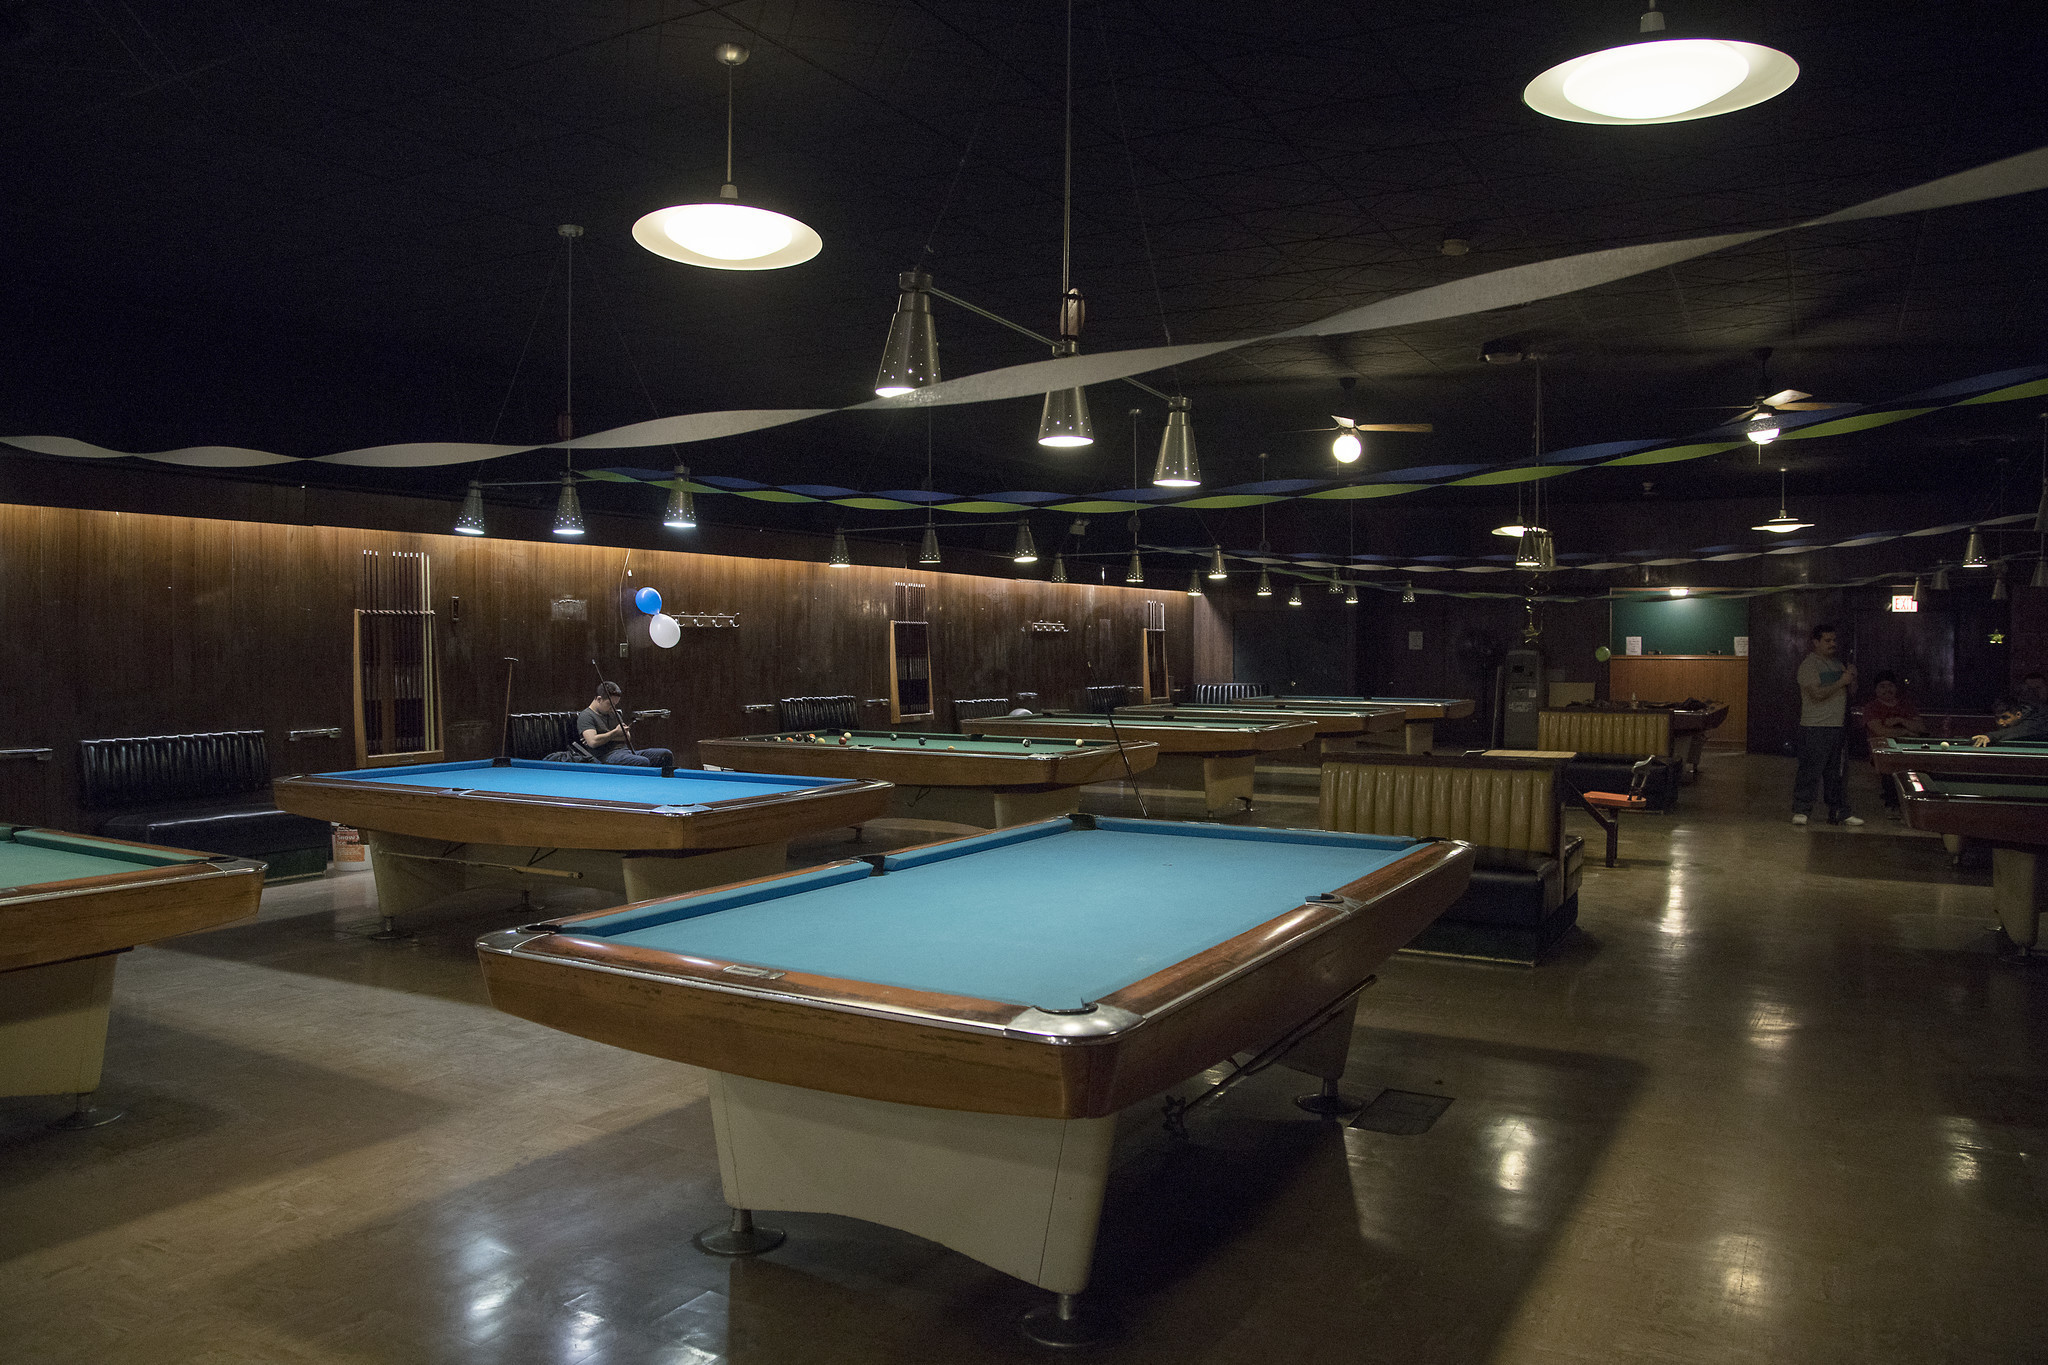 Oldschool Pool Halls End Of An Era A Reminder To Cherish Special - Pool table hall near me